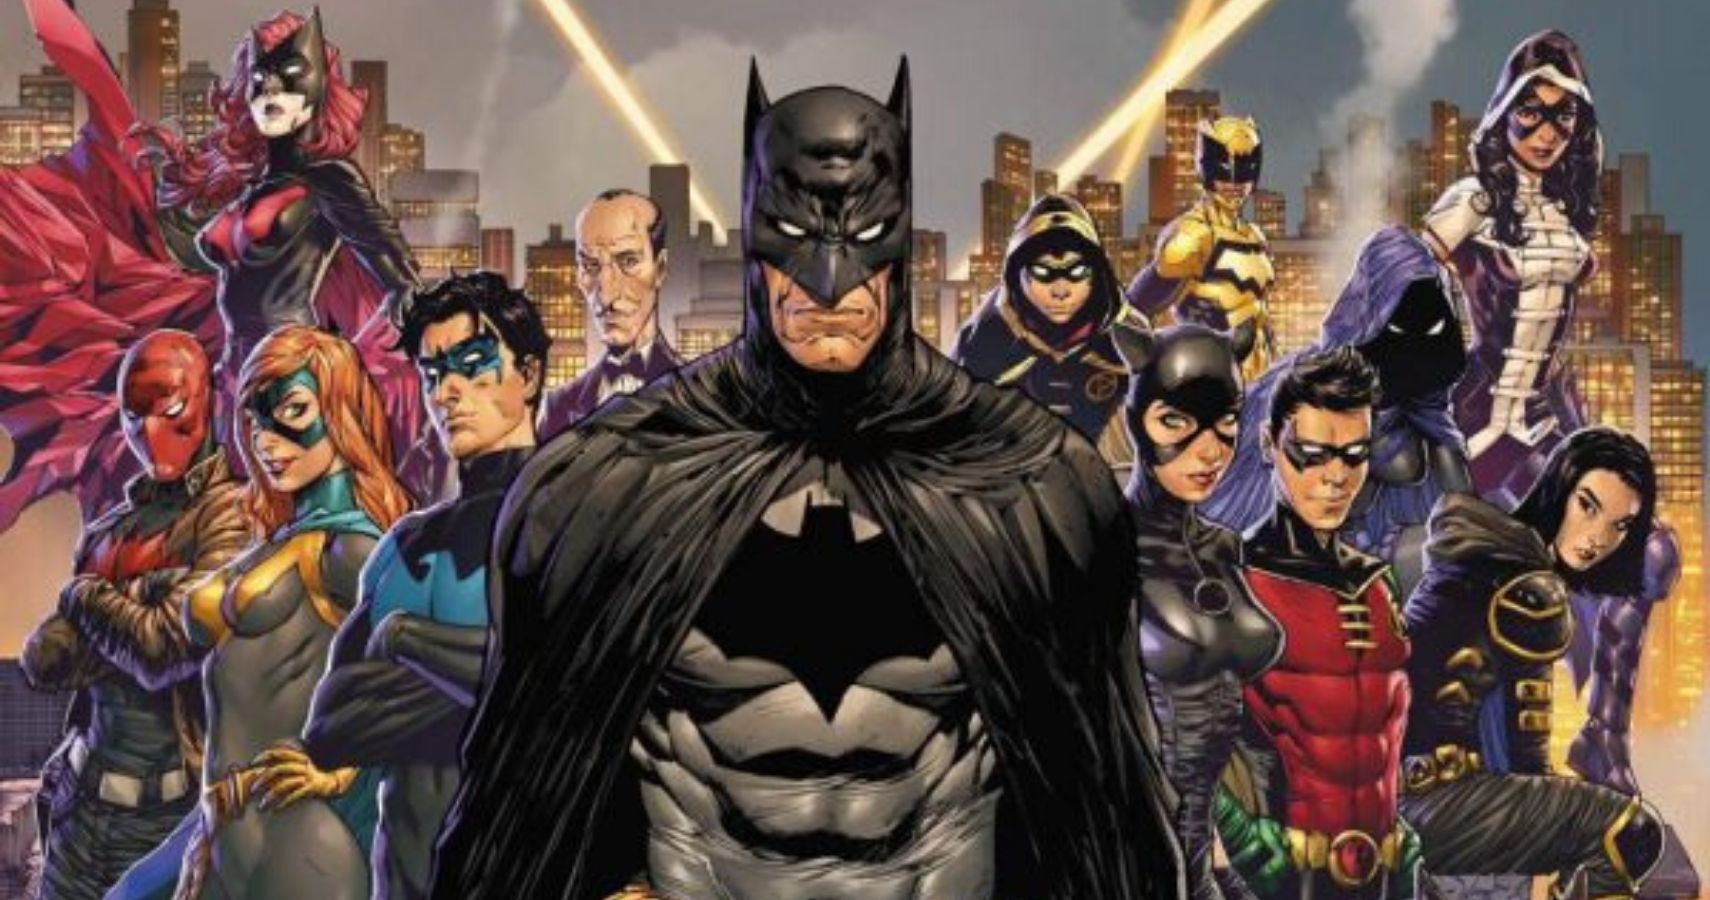 Batman: 10 Surprising Facts About The Bat Family | ScreenRant